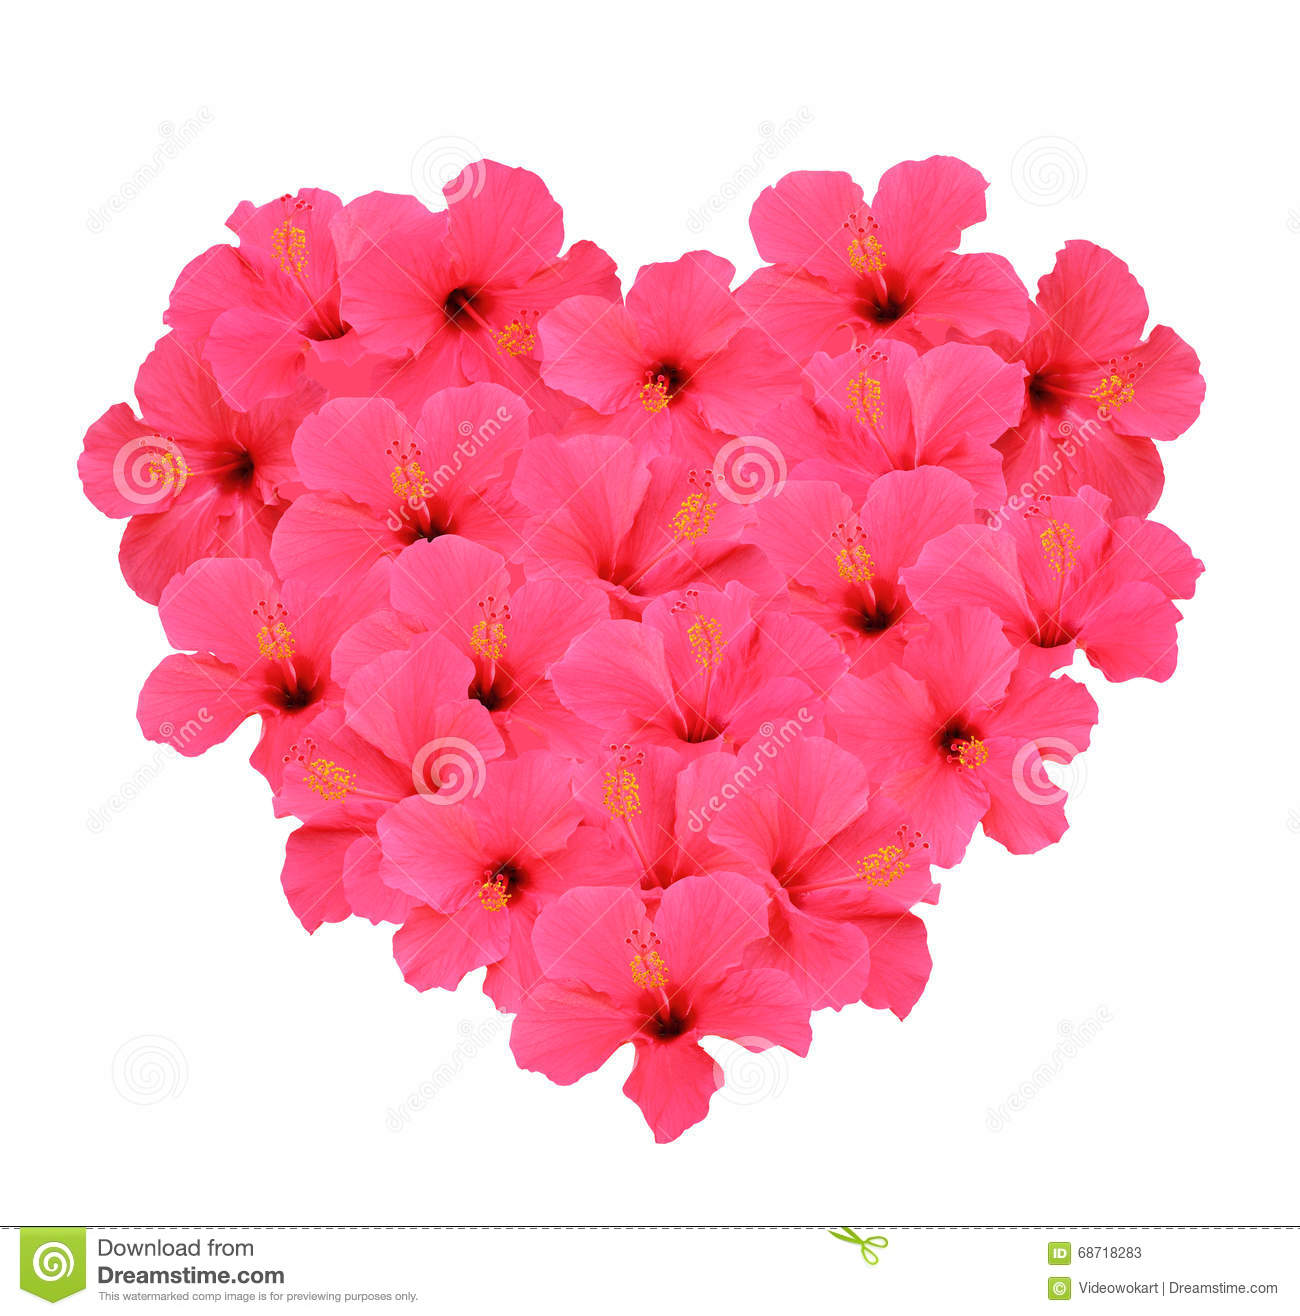 Heart shape bouquet made of hibiscus flowers isolated on white heart shape bouquet made of hibiscus flowers isolated on white background izmirmasajfo